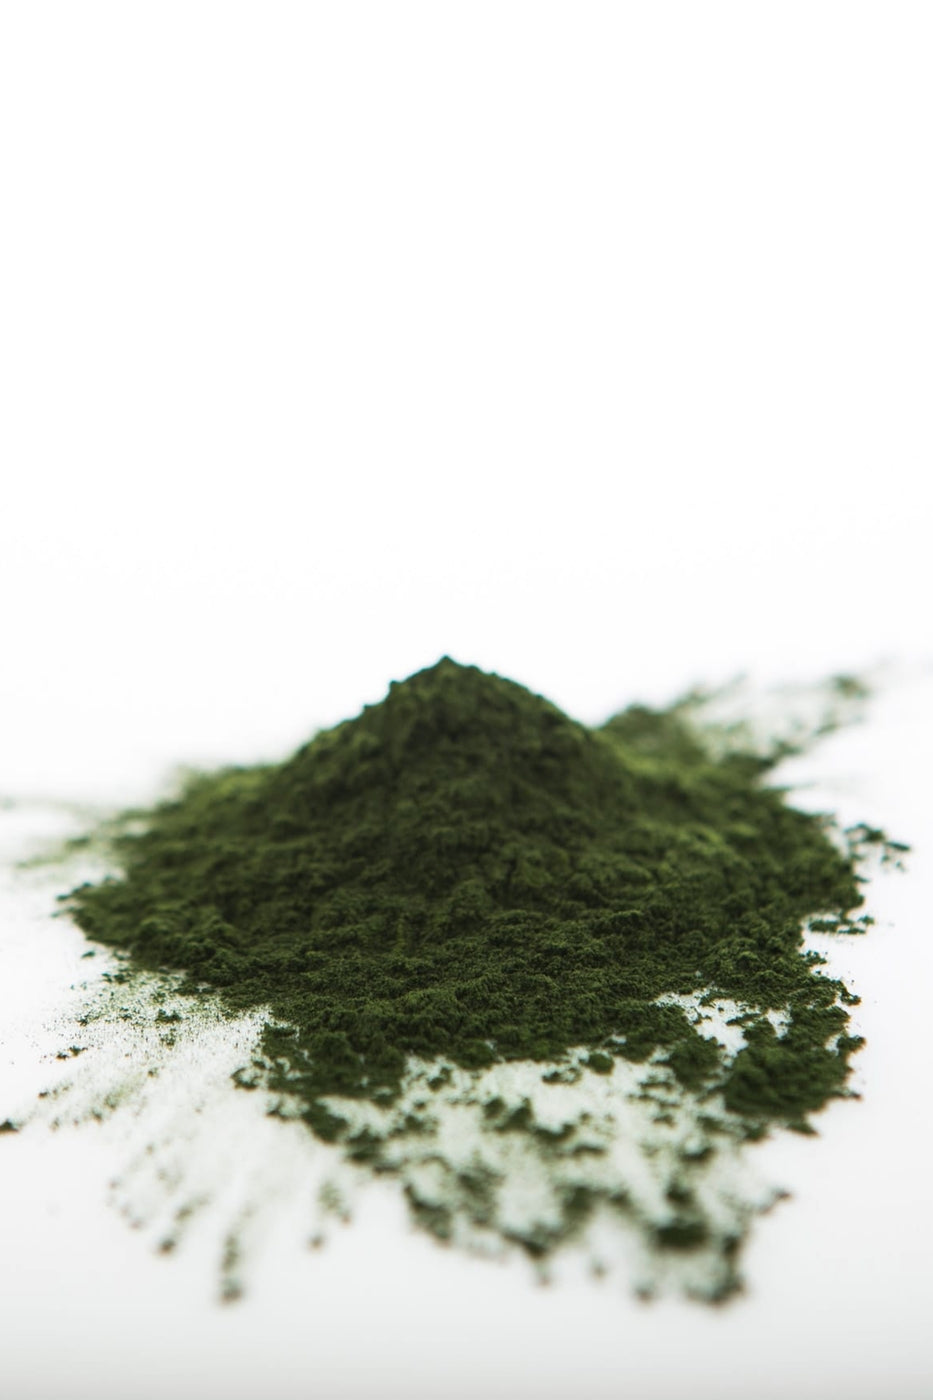 Chlorella Powder (Organic, Sound Processed)